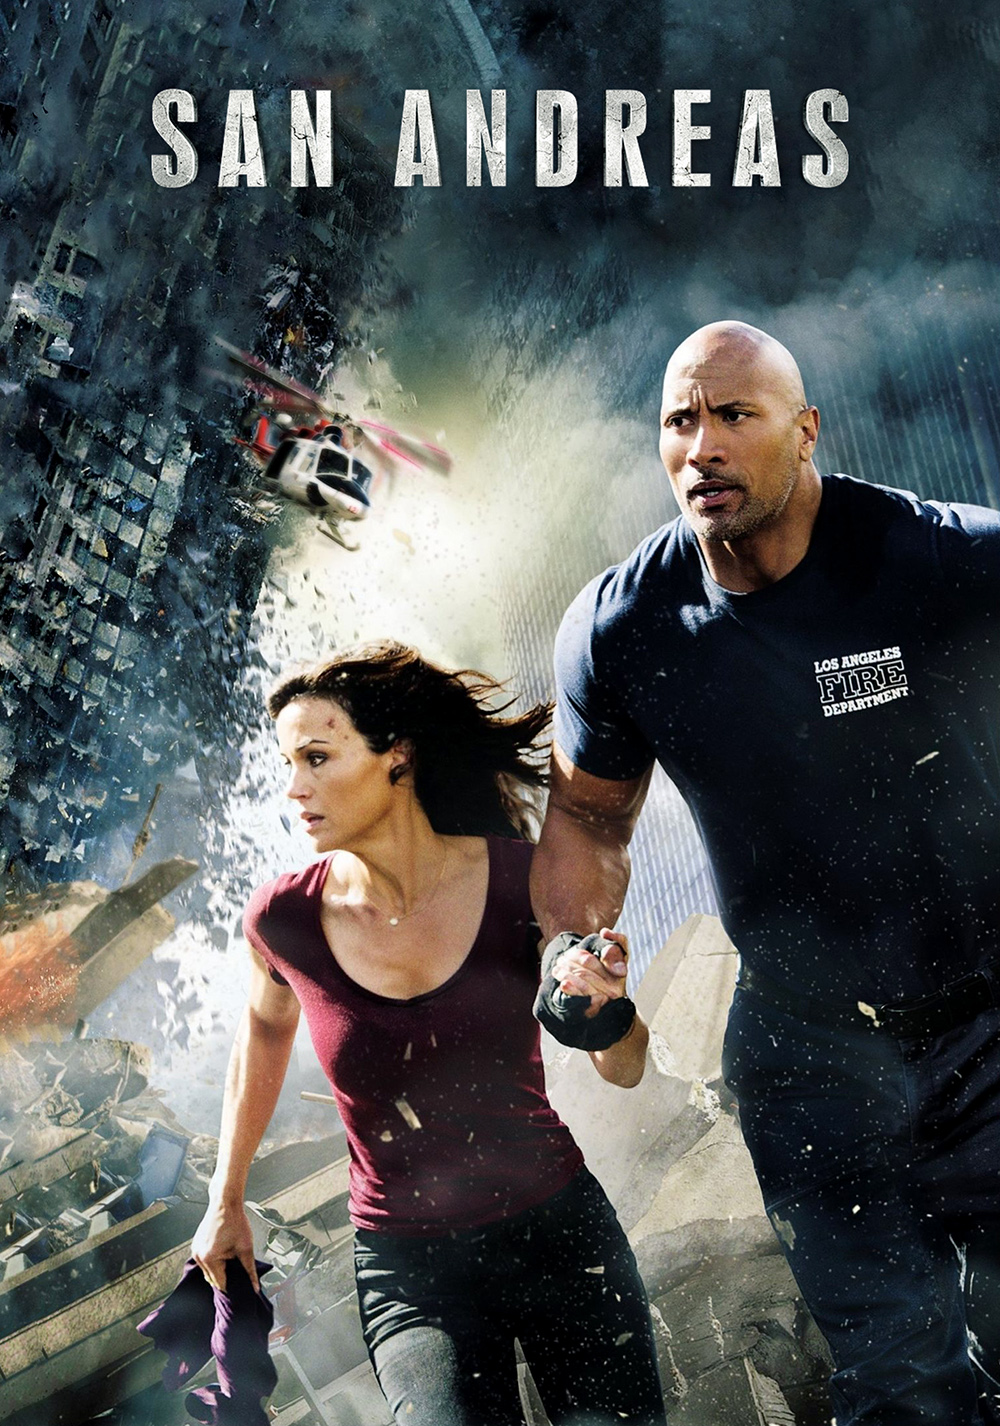 SAN ANDREAS (2015) MOVIE TAMIL DUBBED HD